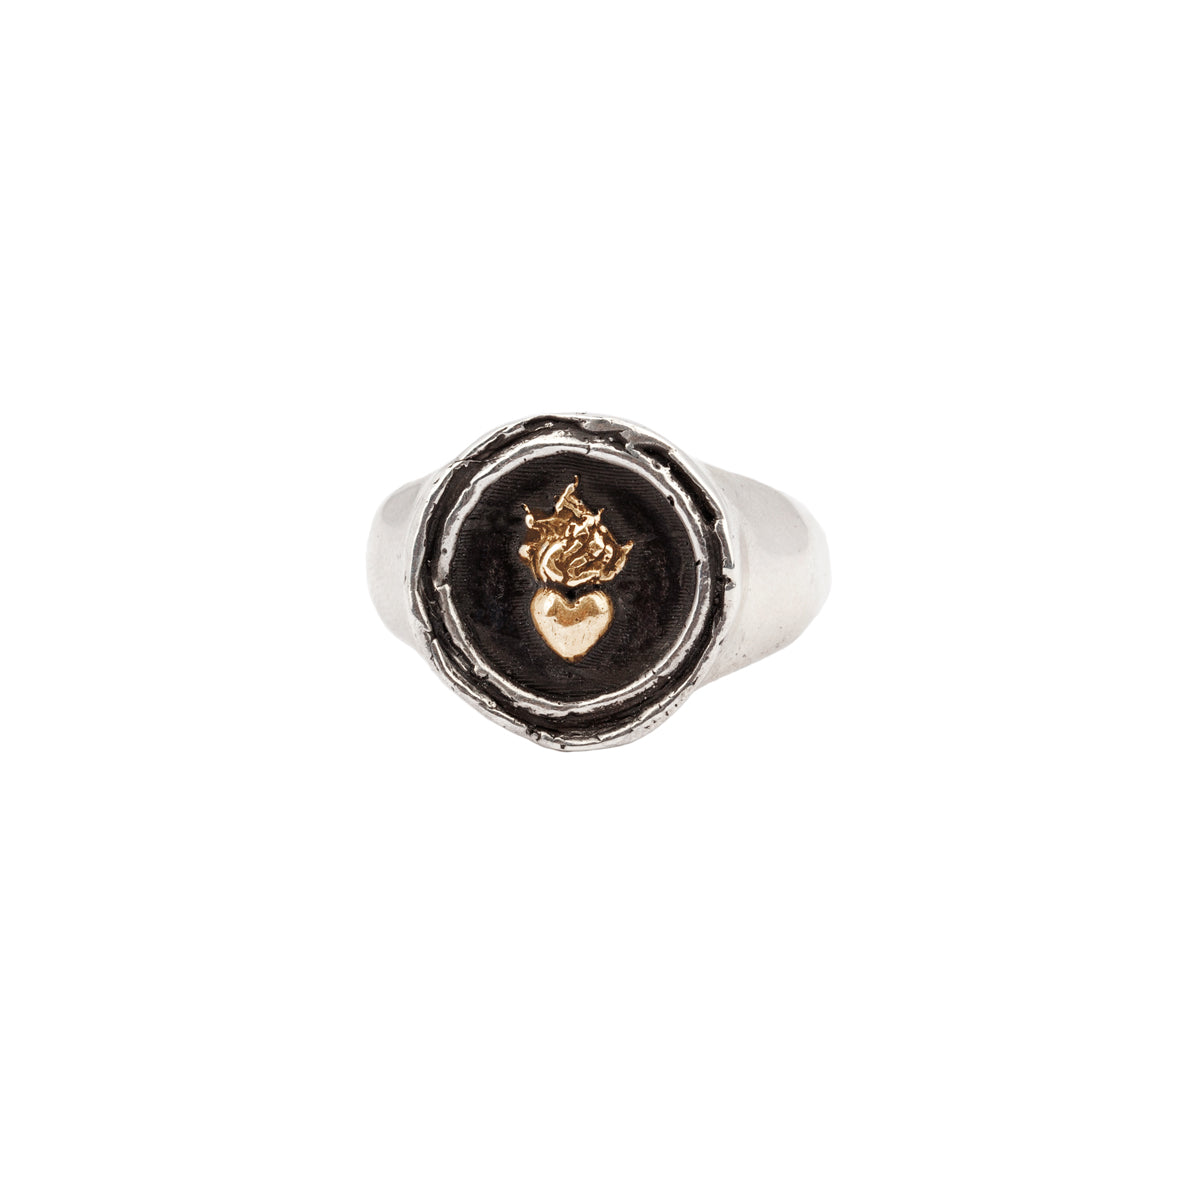 Flaming Heart 14K Gold On Silver Signet Ring